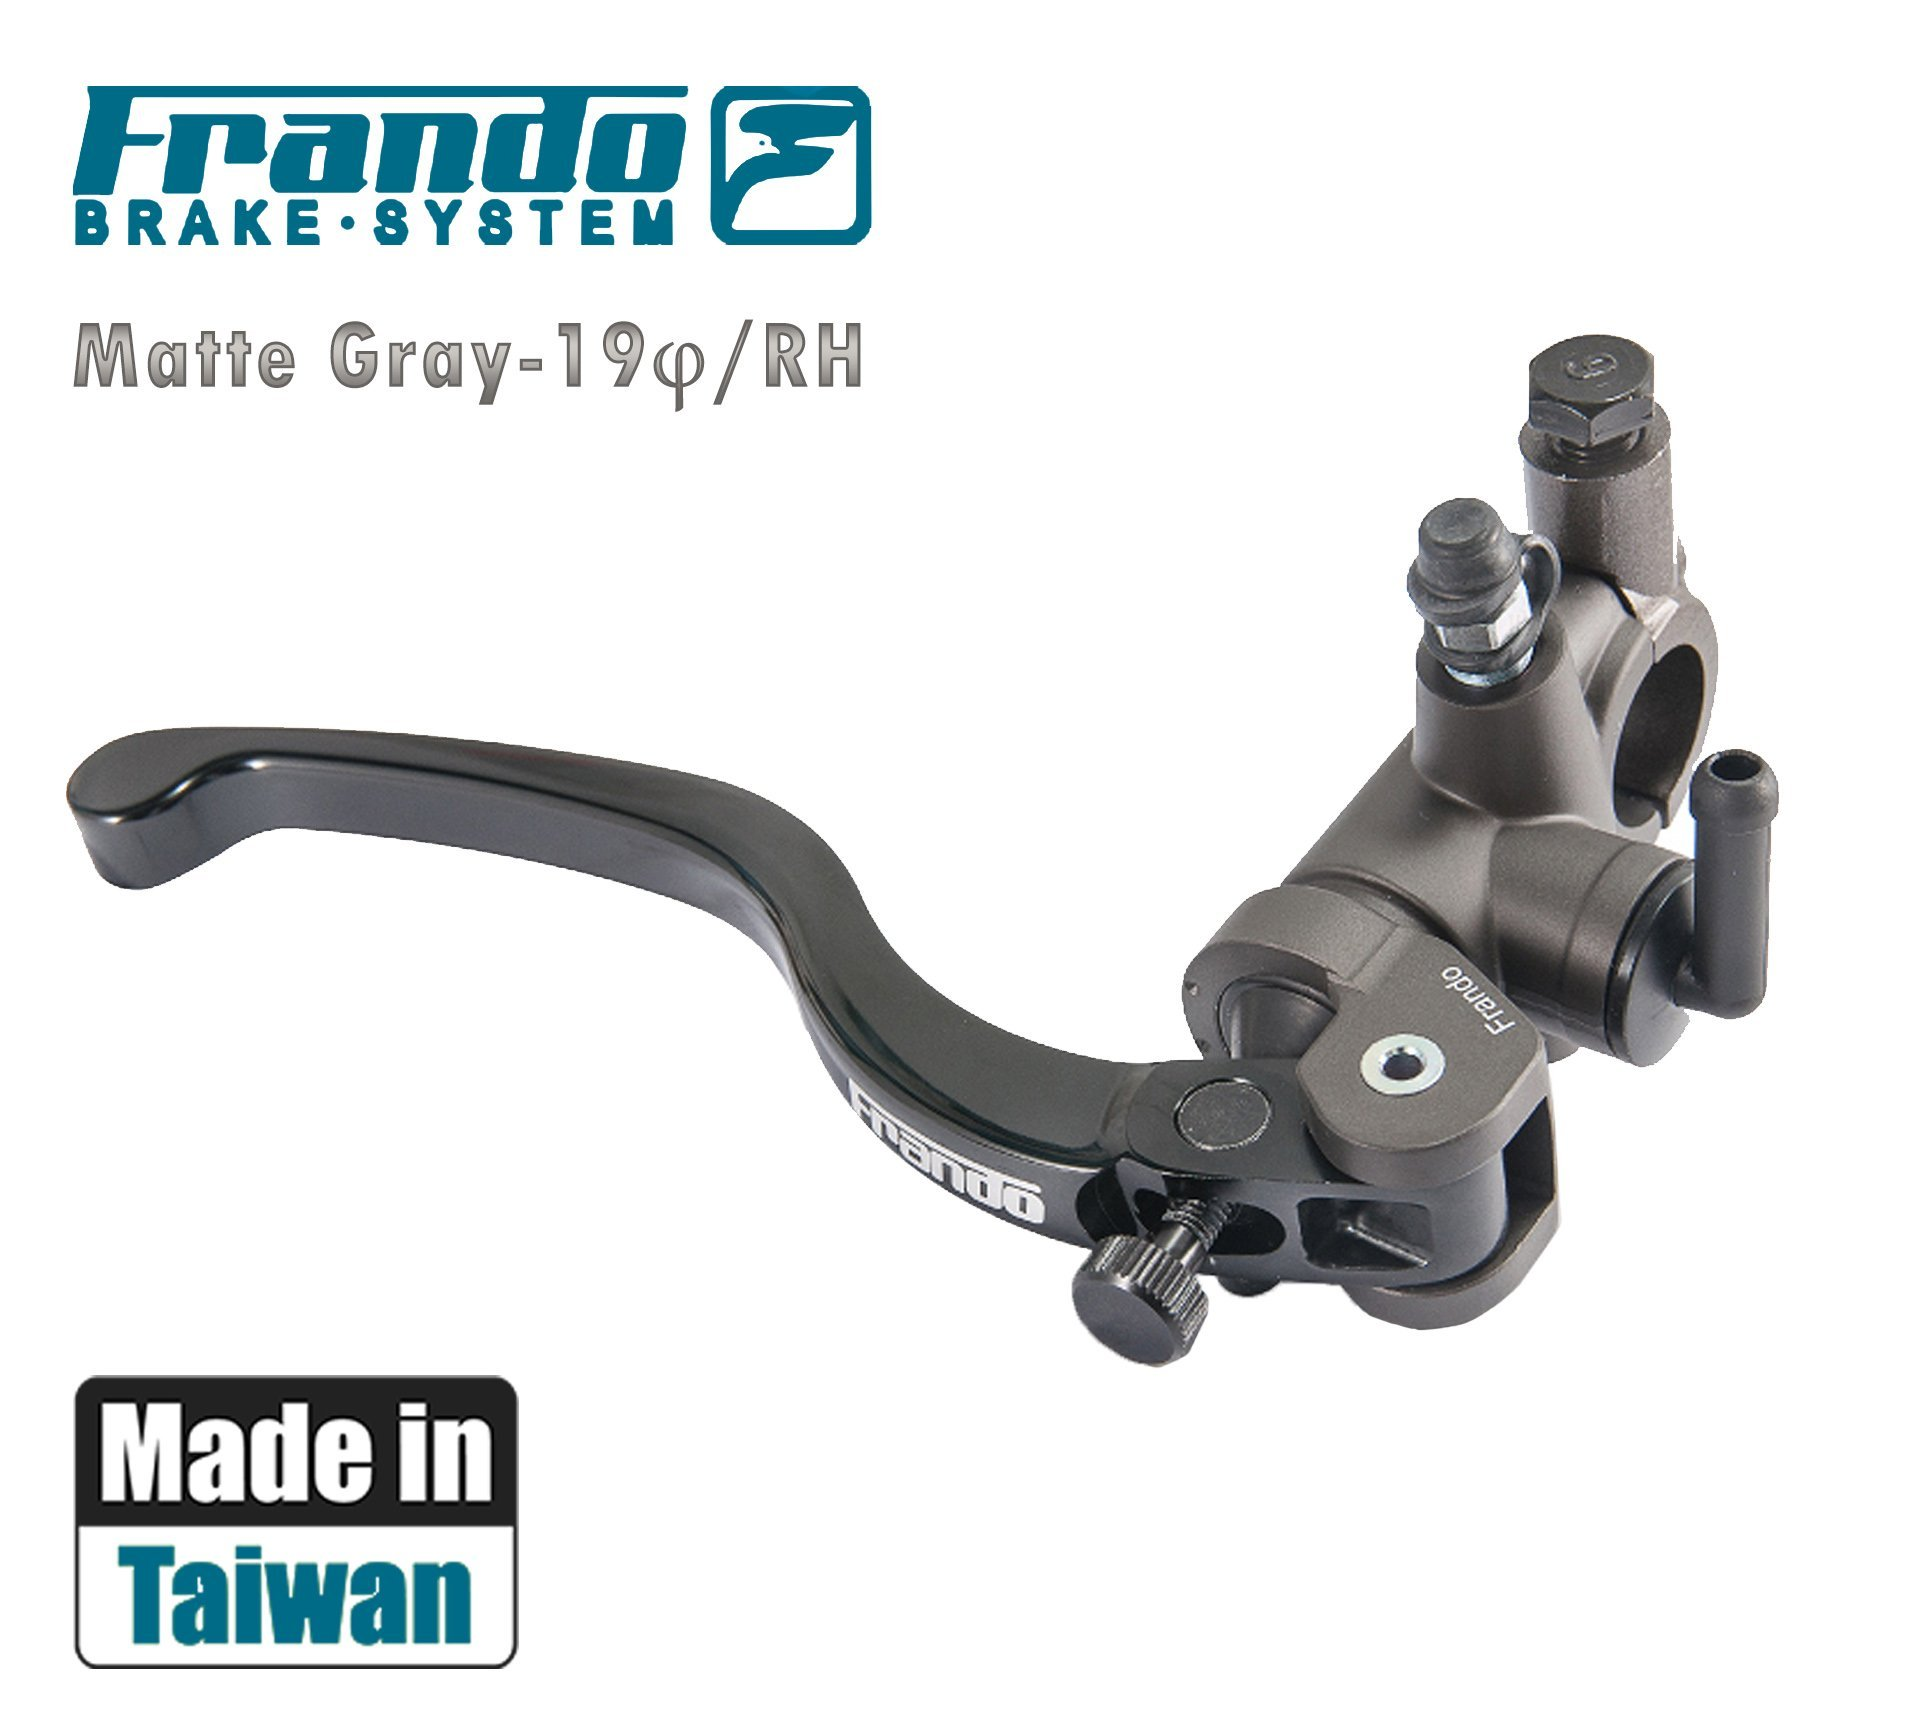 Frando 7NB Motorcycle Hydraulic Front Dual Brake Master Cylinder (DarkGray), Piston Dimension: 19mm, 30 Sections Adjustable CNC Lever, Fluid Reservoir Kit